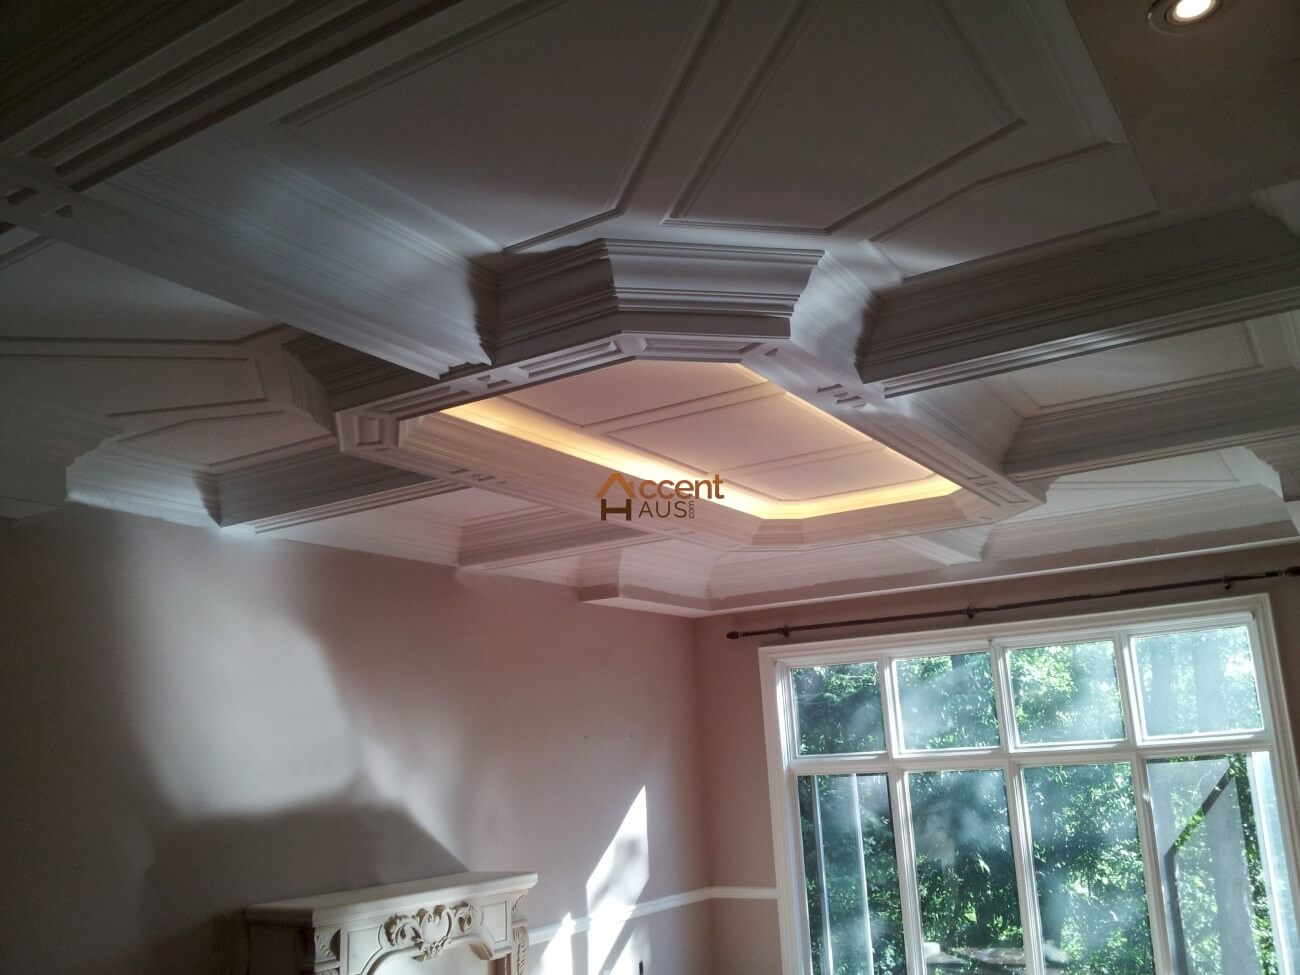 Octagon coffered ceiling with lighting